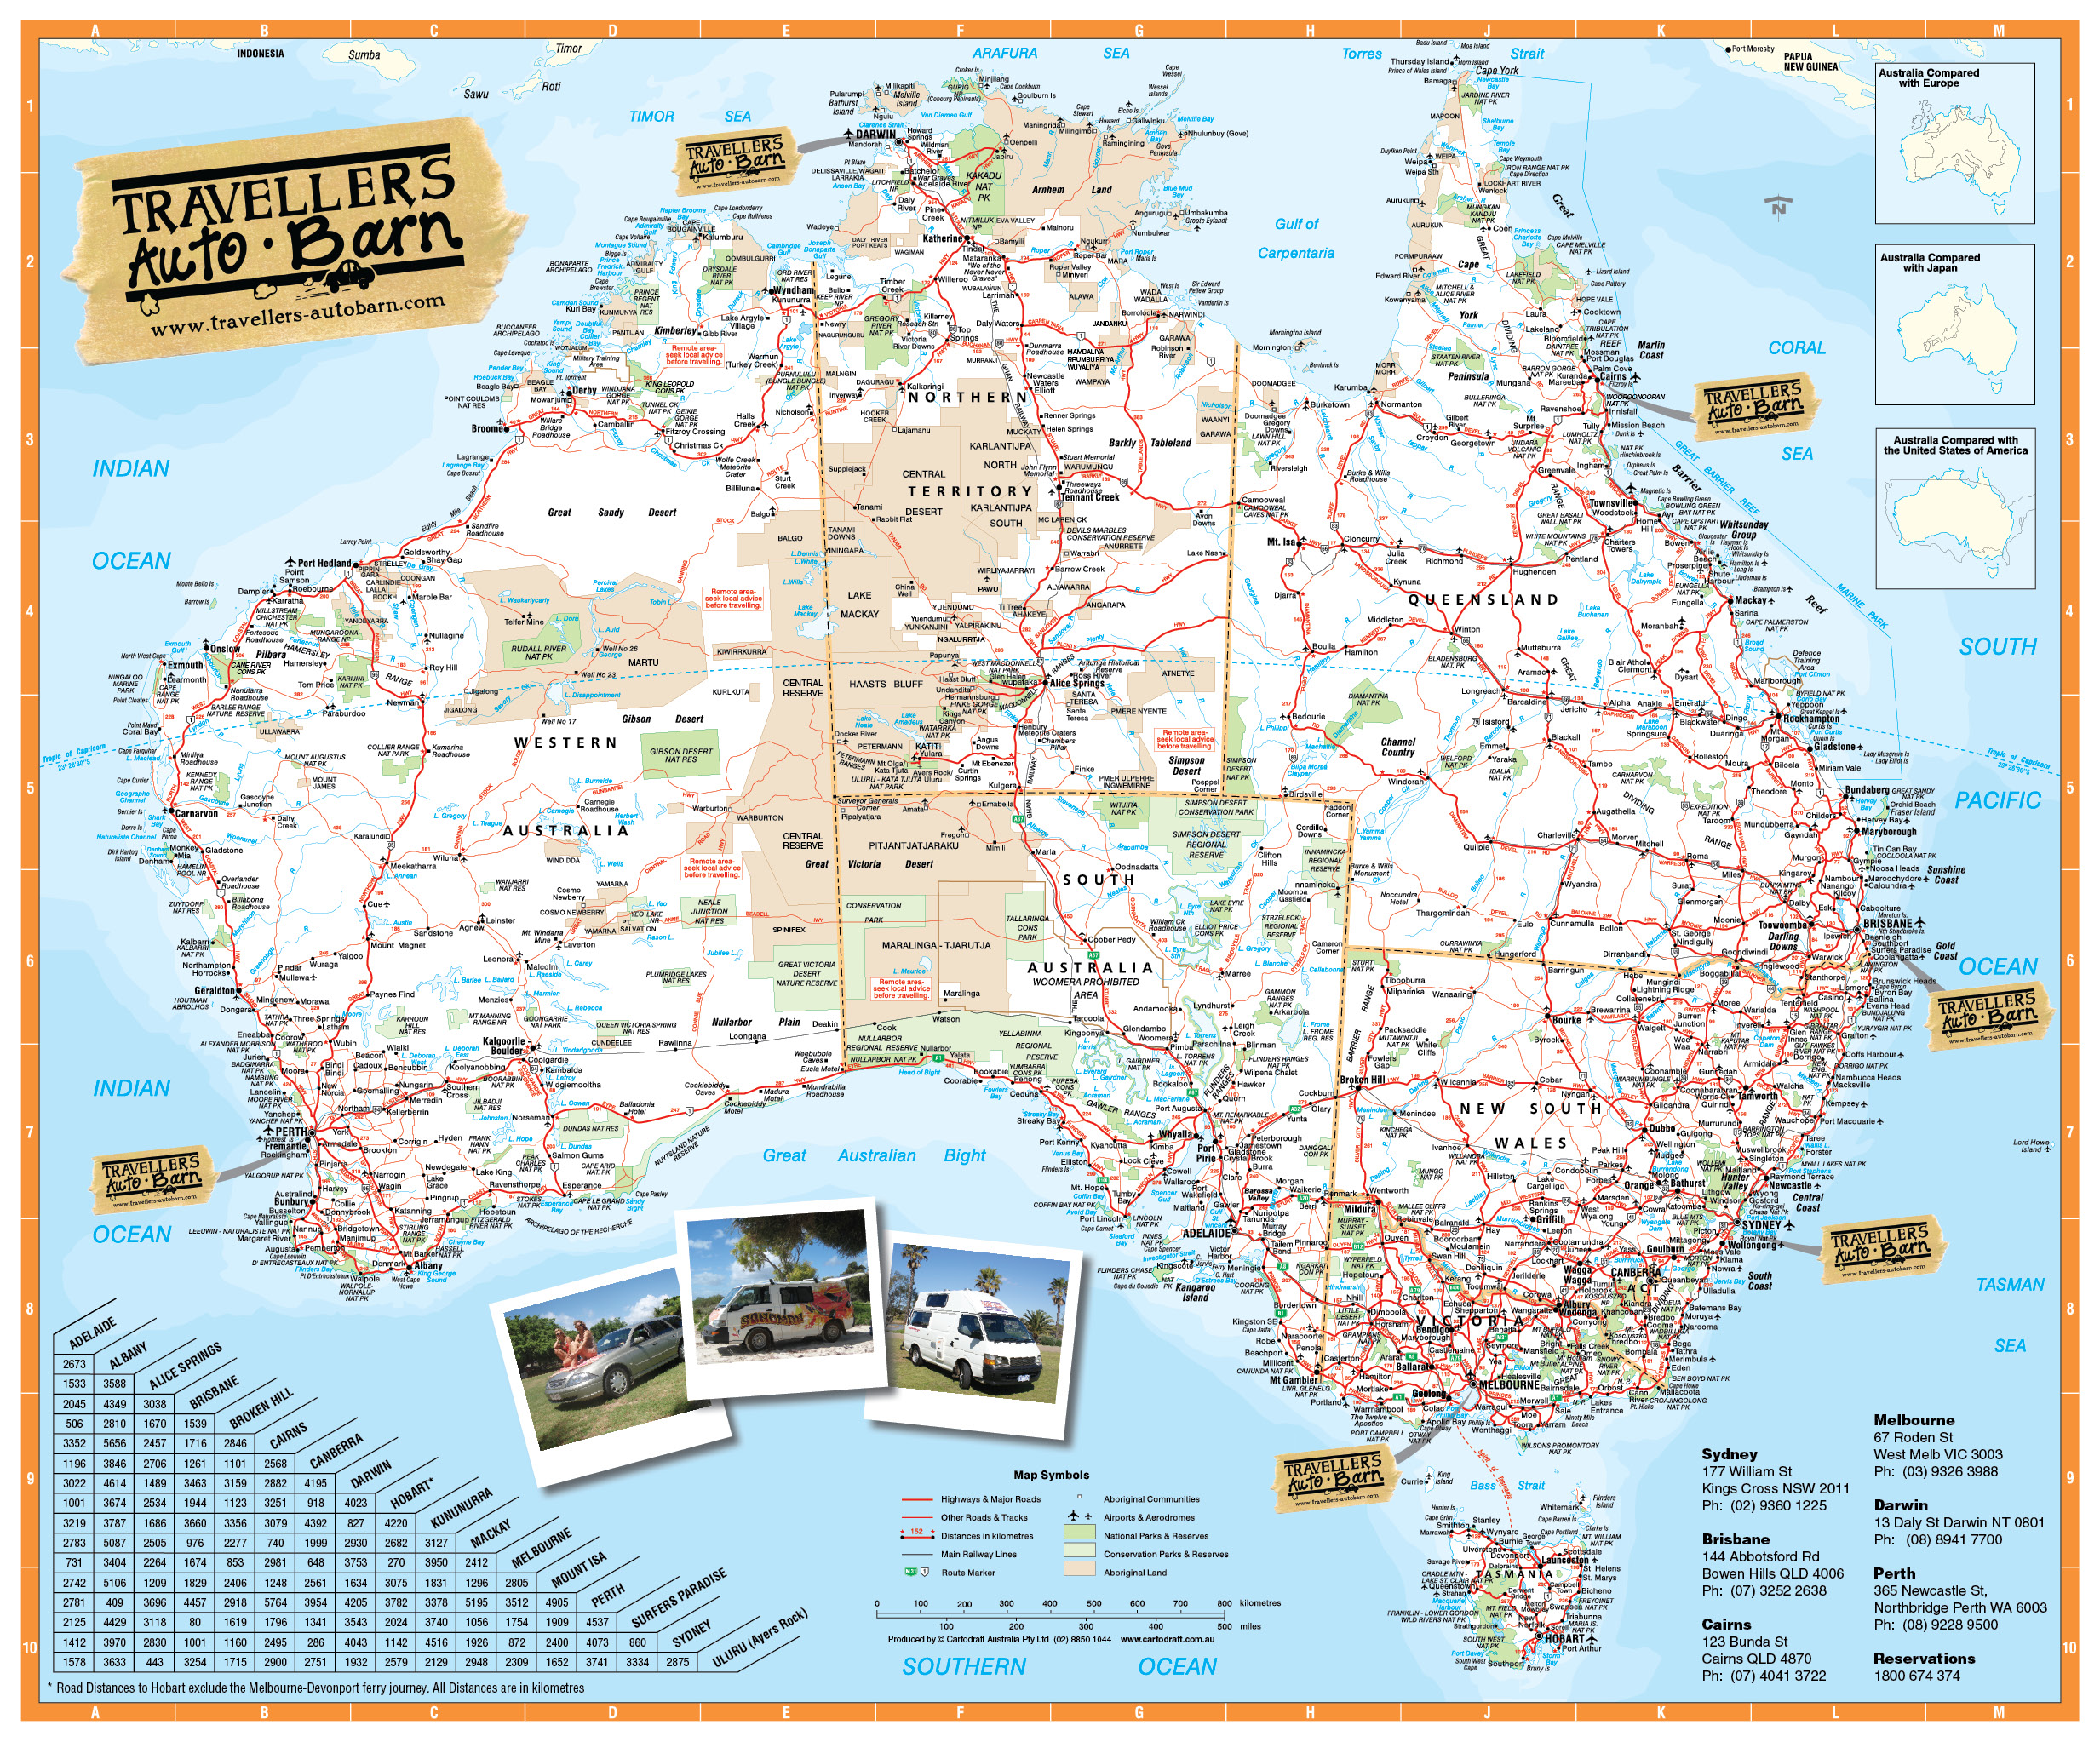 travellers auto barn honoured with asia pacific regional award - australia map